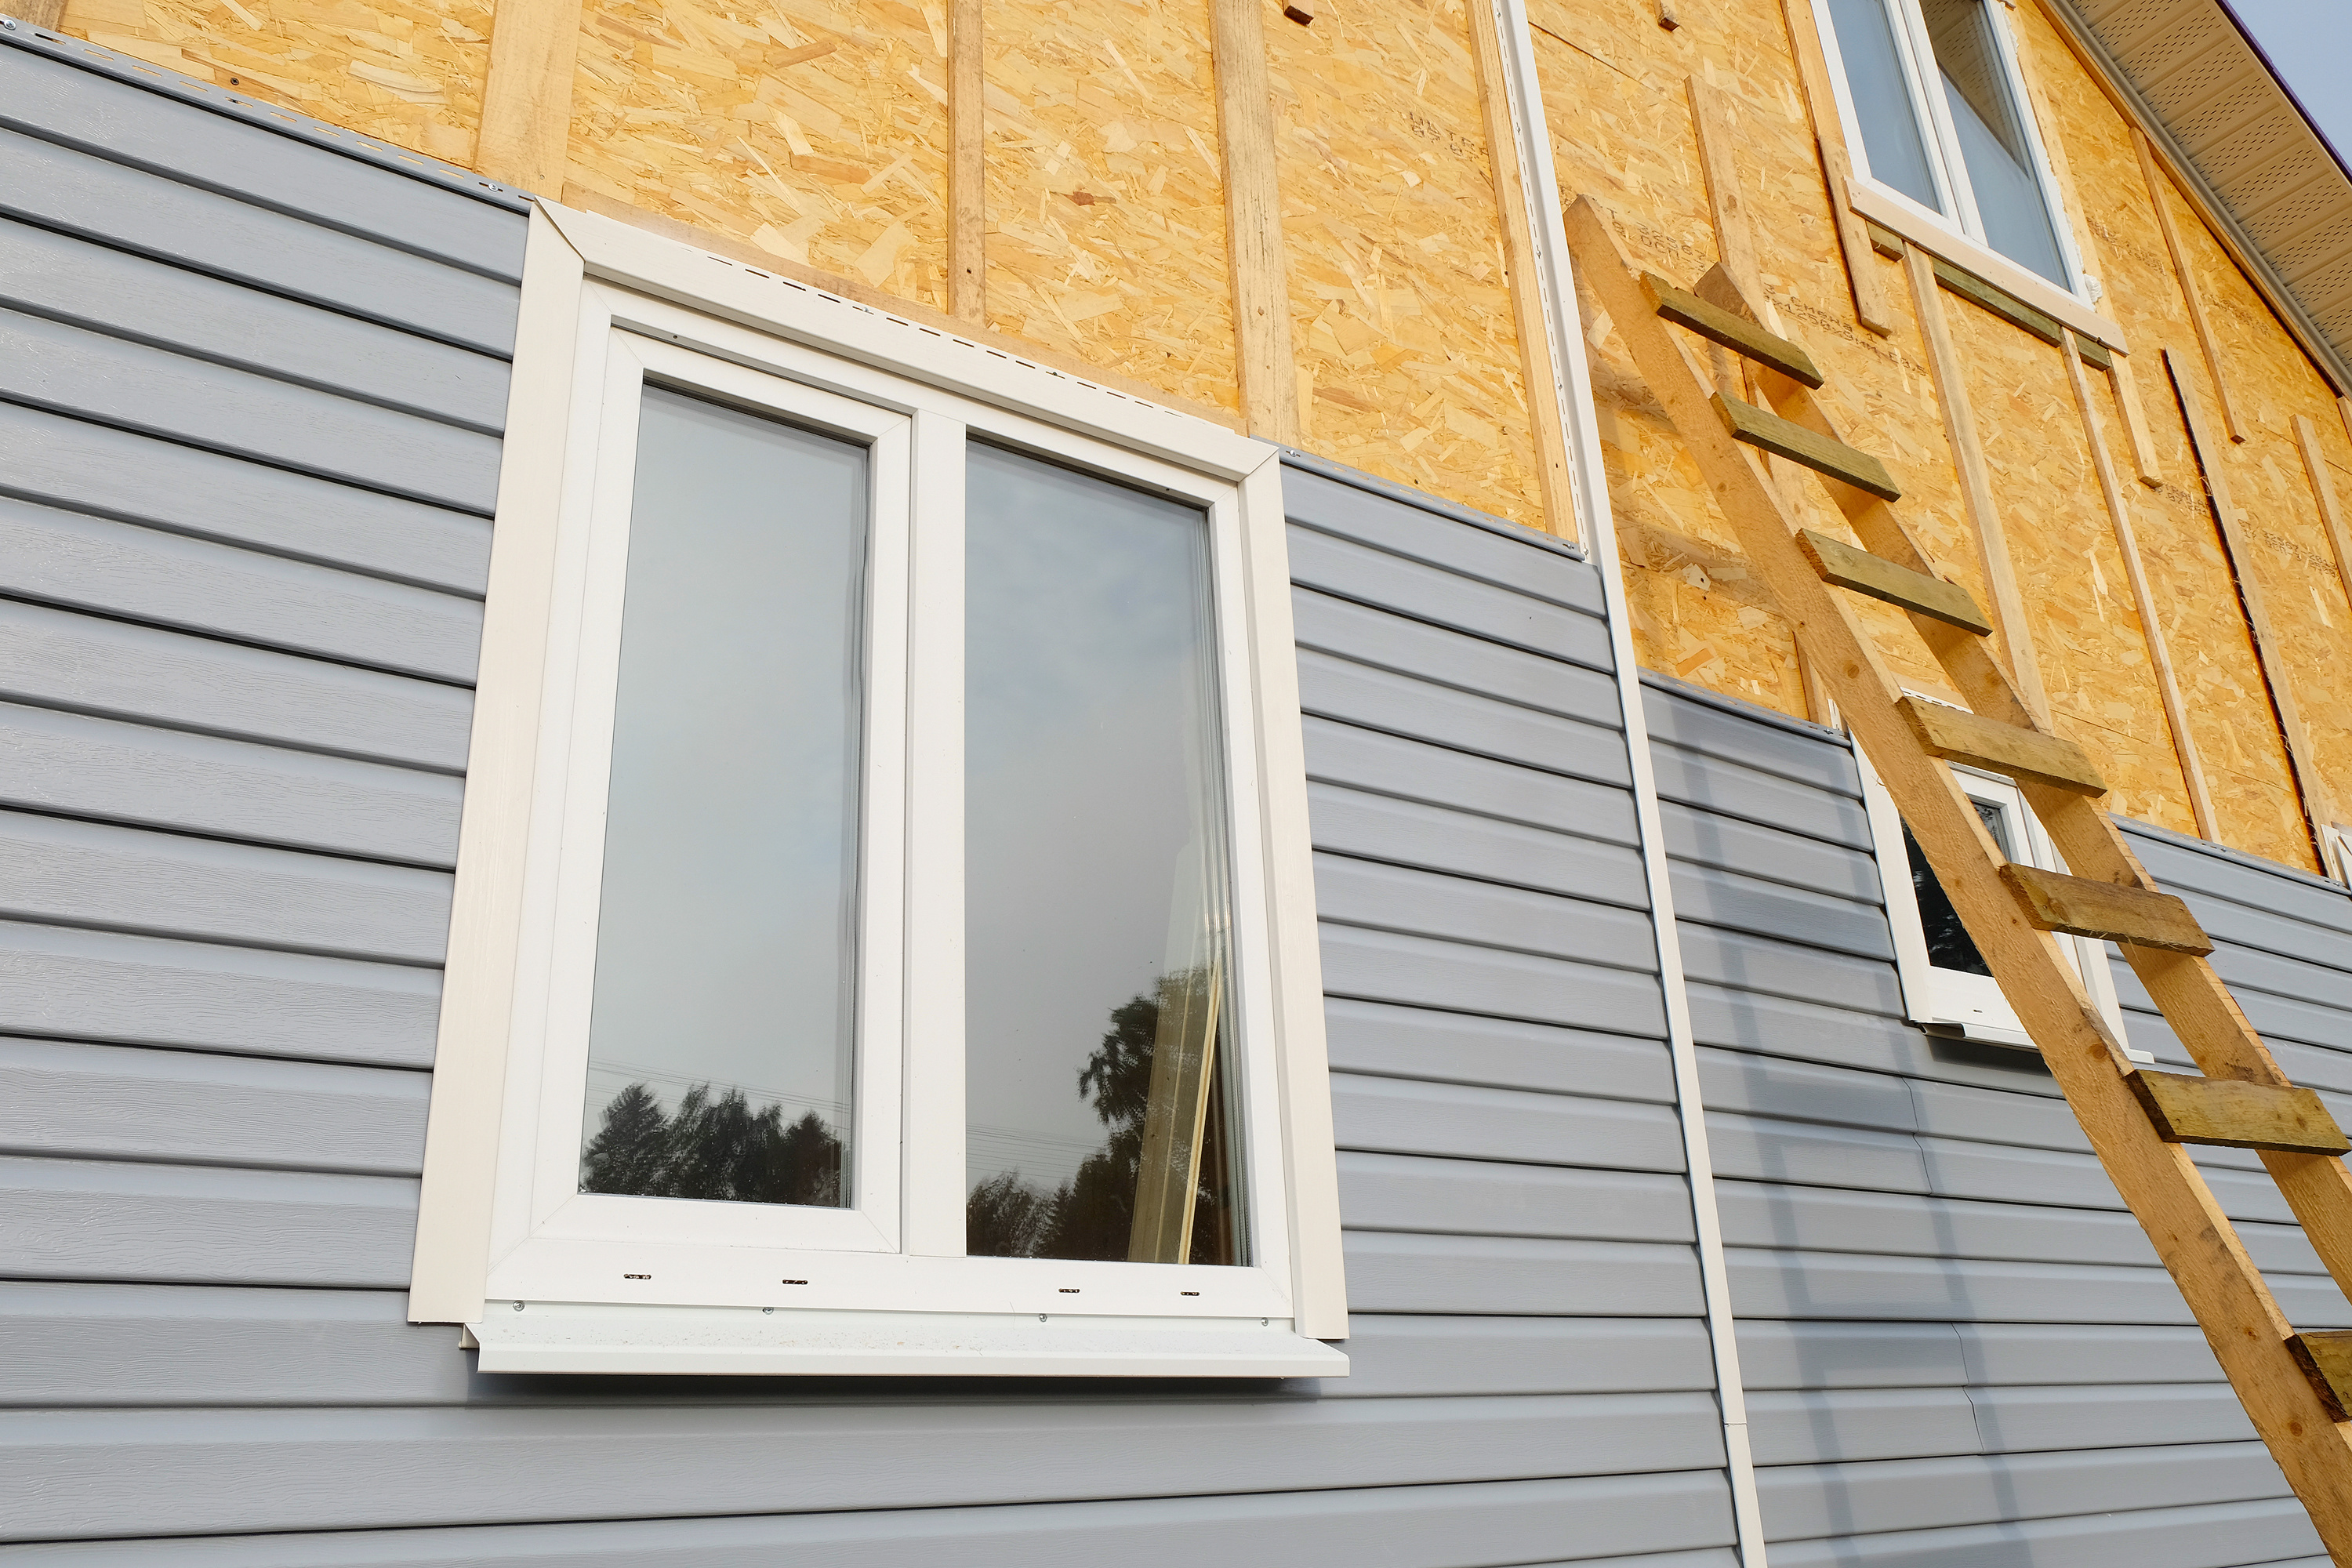 Northface Construction Announces that Homeowners Want More Dynamic Colors on Their Homes' Exterior in 2020